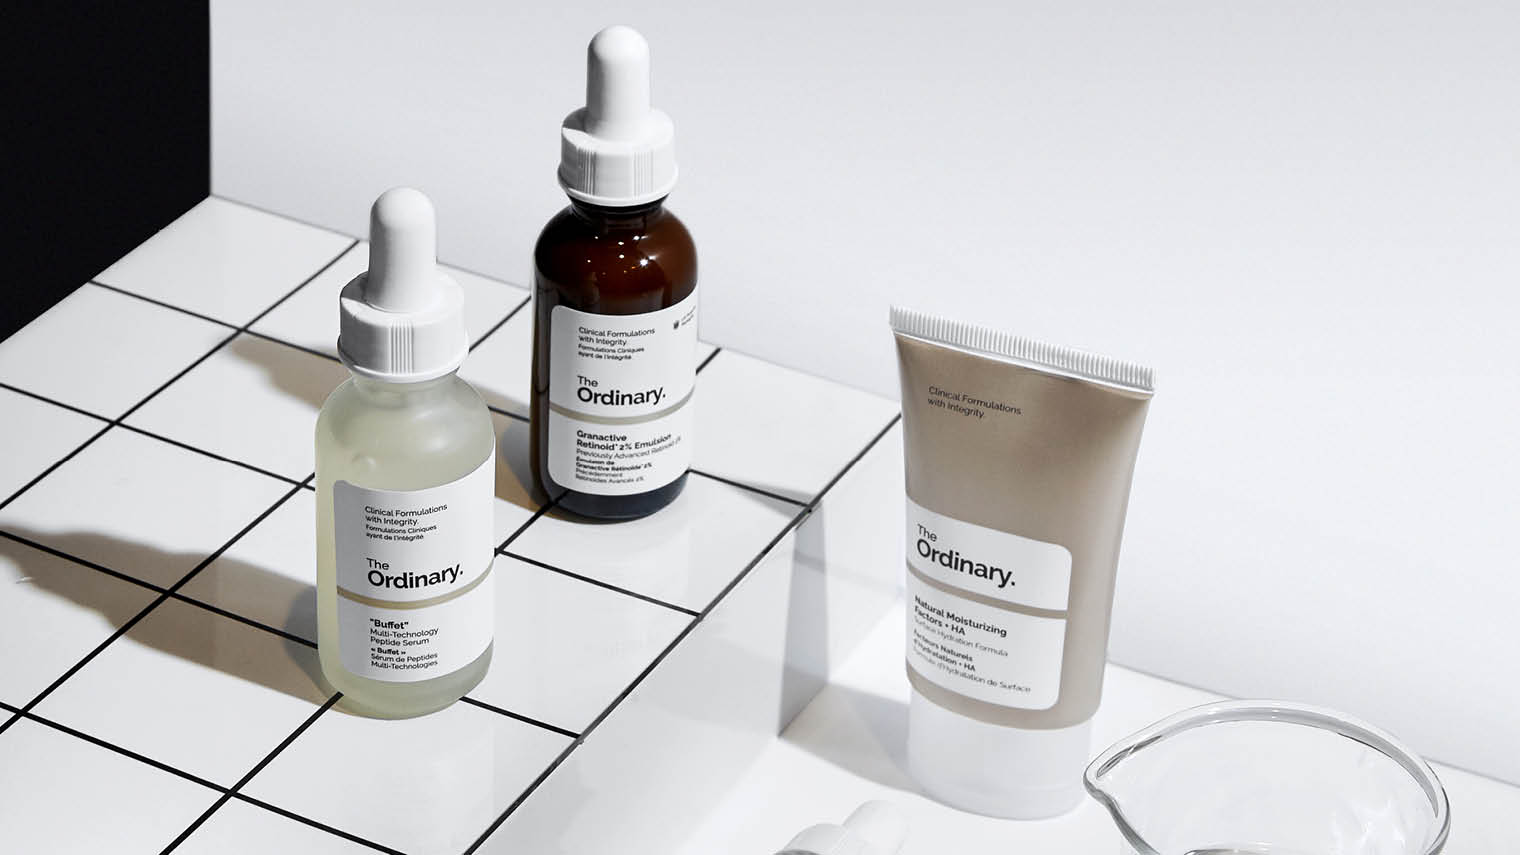 the ordinary skincare packaging design